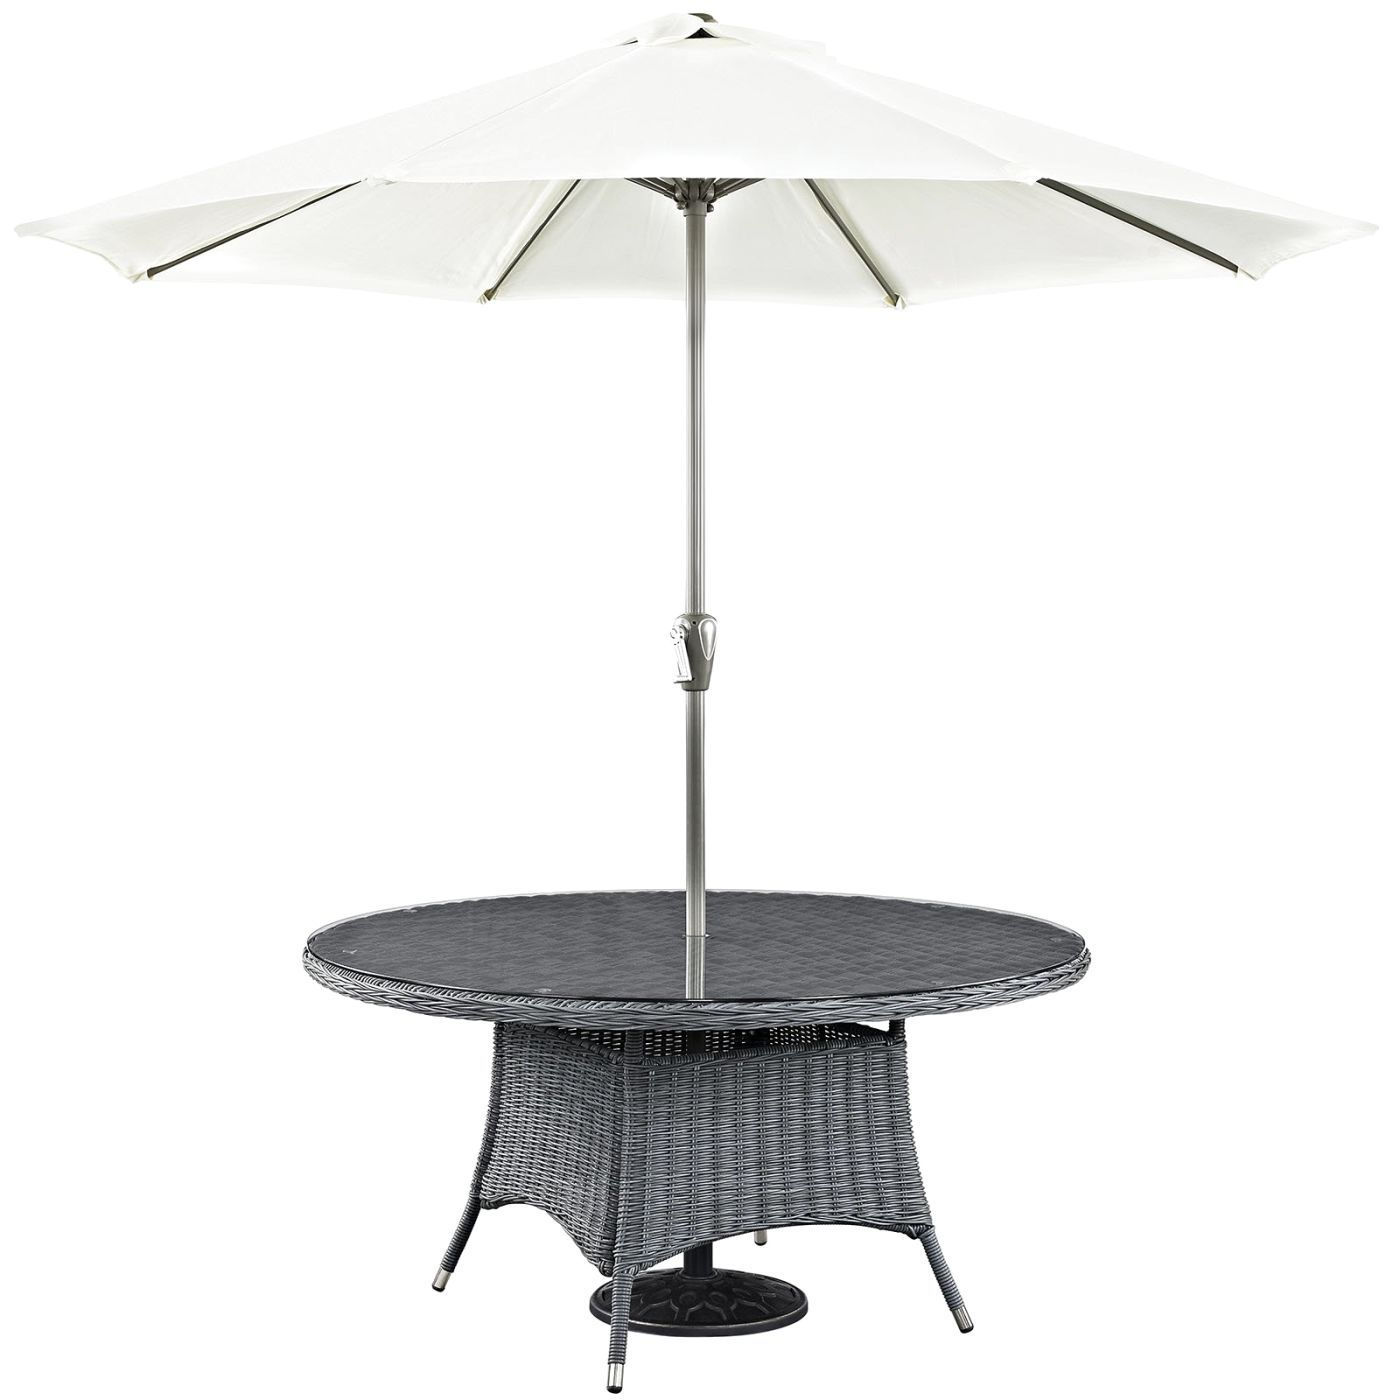 modern outdoor and patio furniture contemporary dining tables modway eei gry summon round table gray umbrella accent antique living room legion pottery barn square dale tiffany